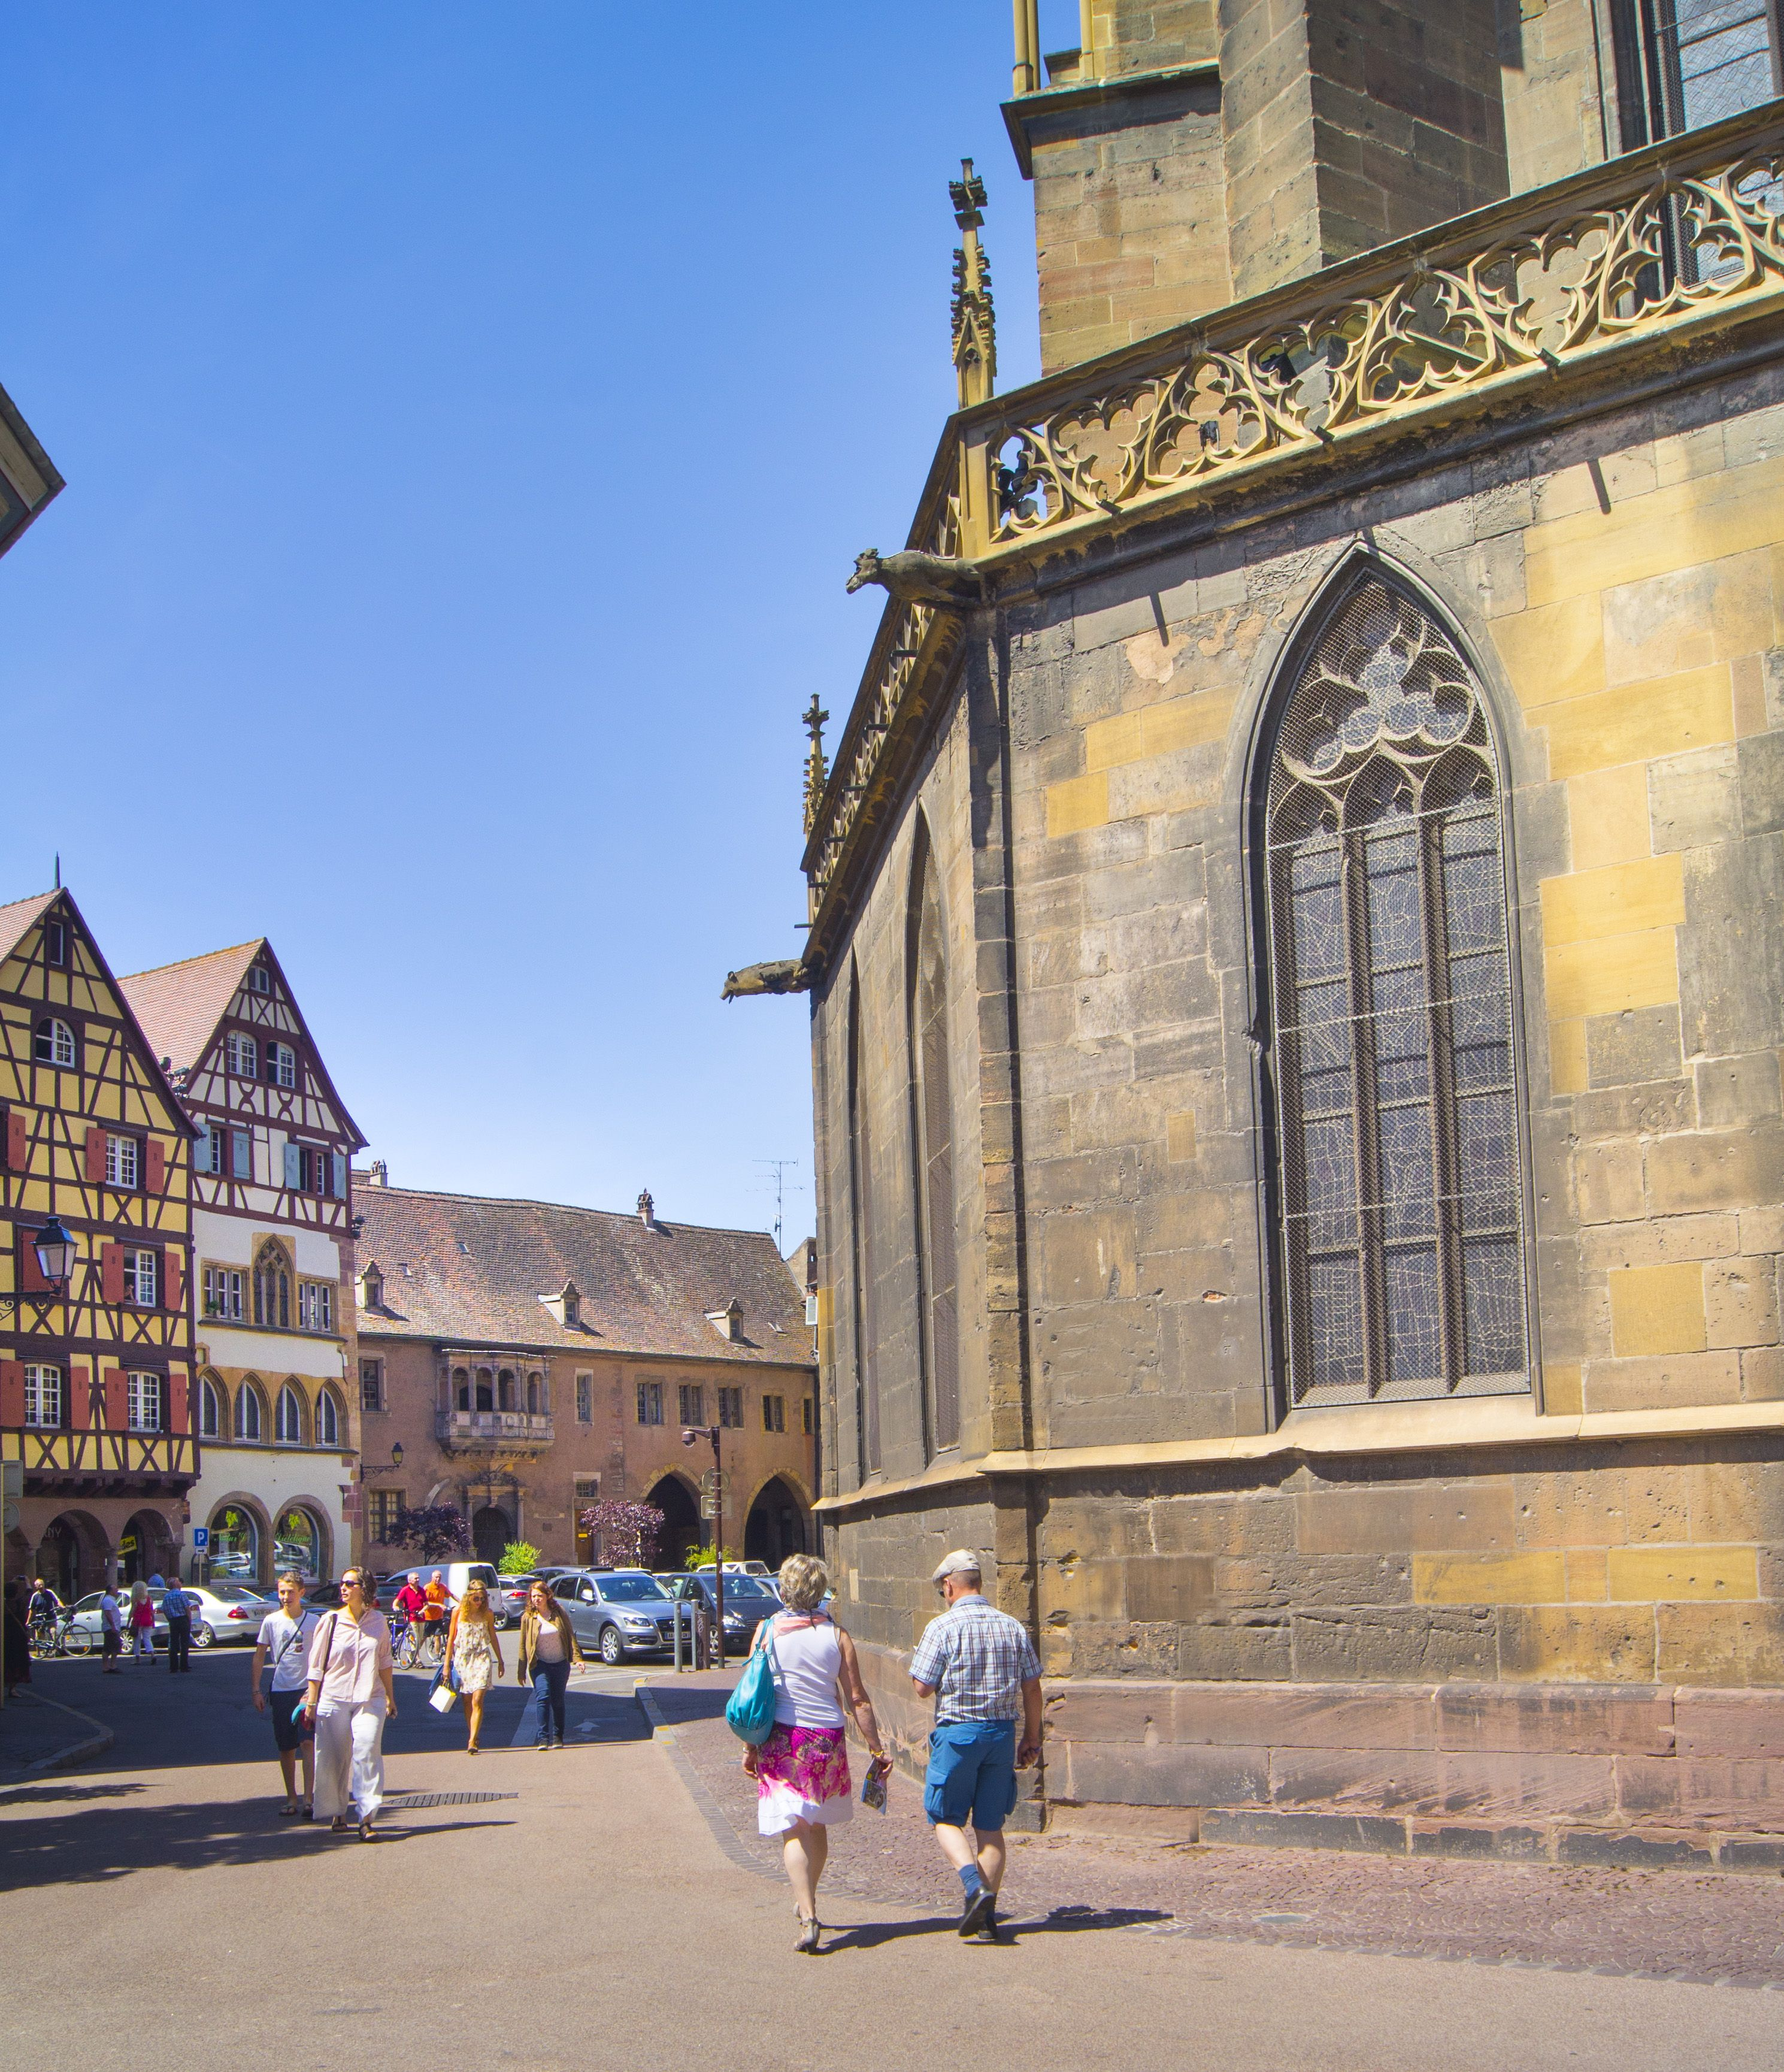 La place de la cath drale colmar alsace france www Colmar beauty and the beast